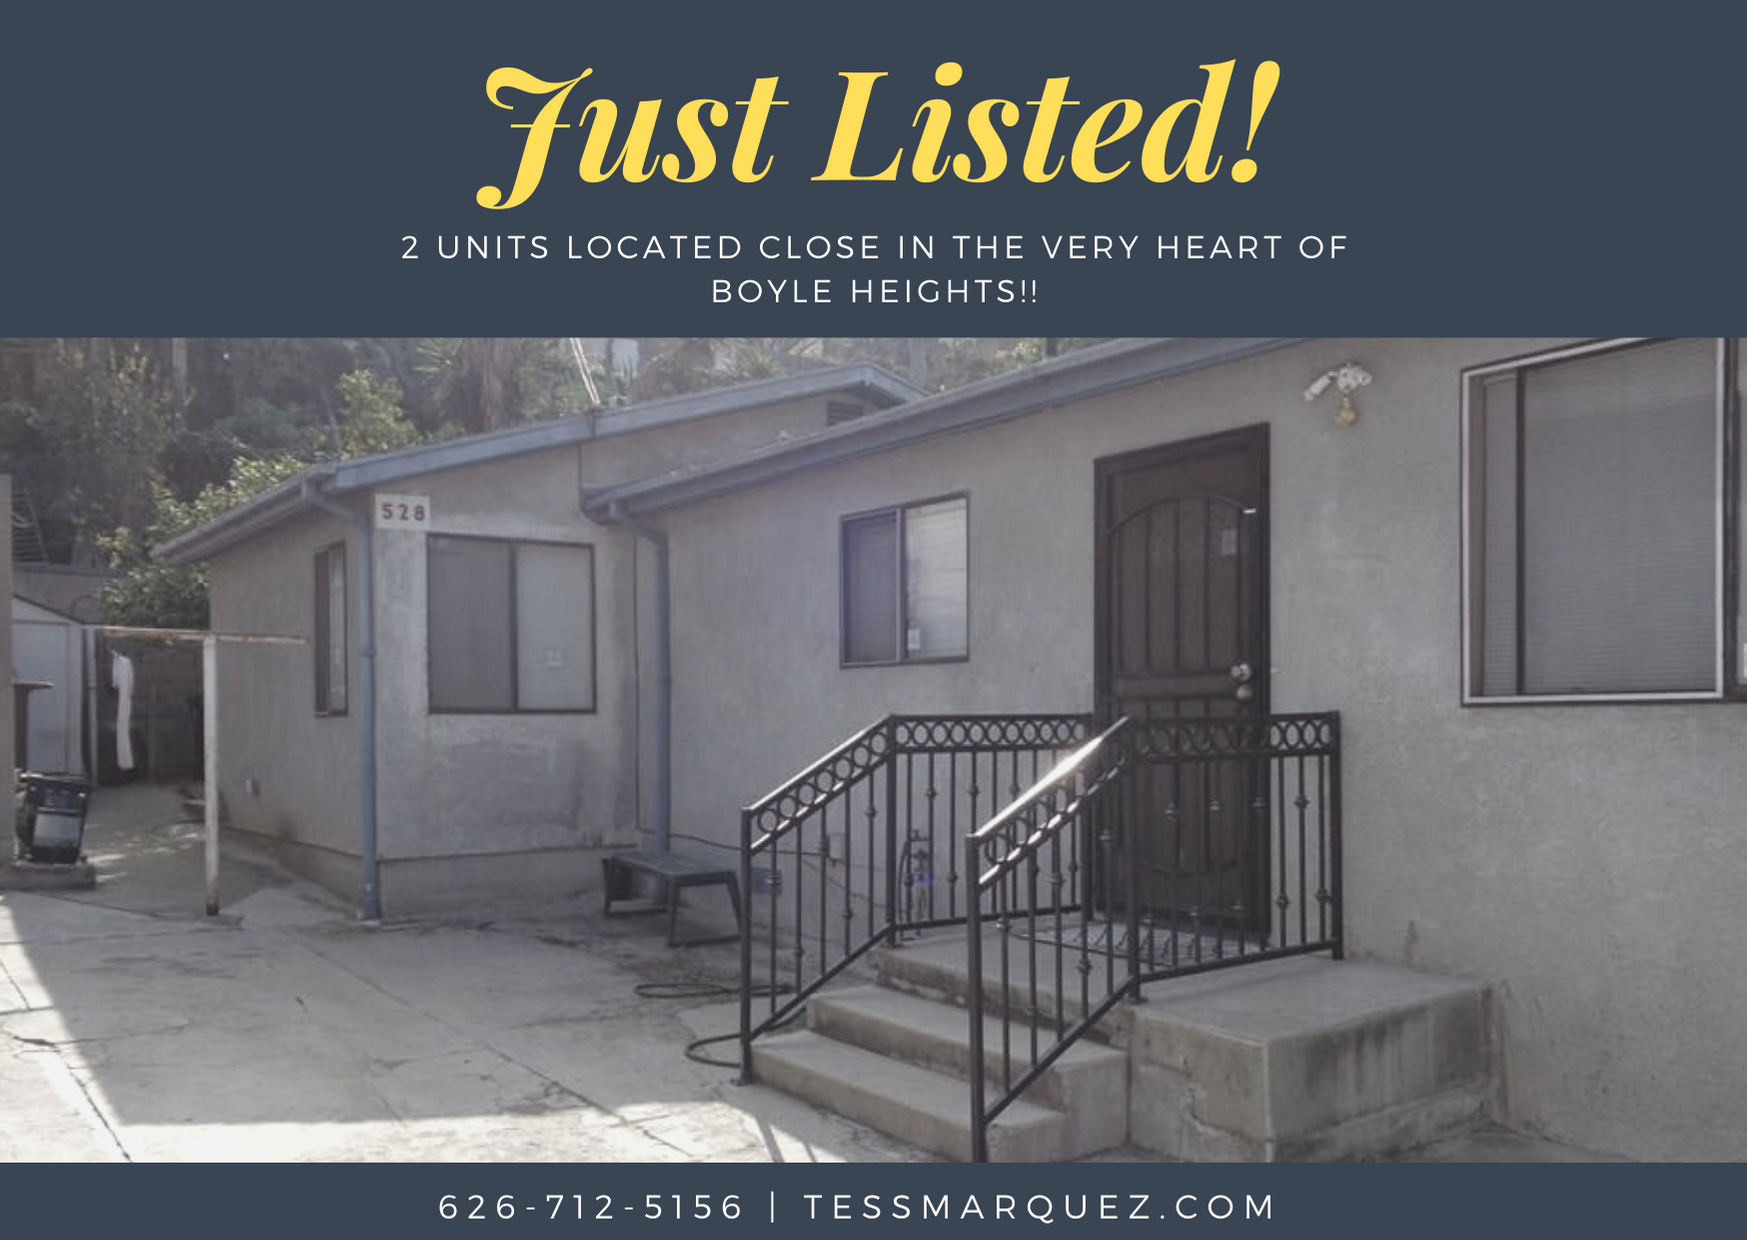 2 Unit Duplex Building In Los Angeles In 2020 Investment Property For Sale Real Estate Los Angeles Real Estate